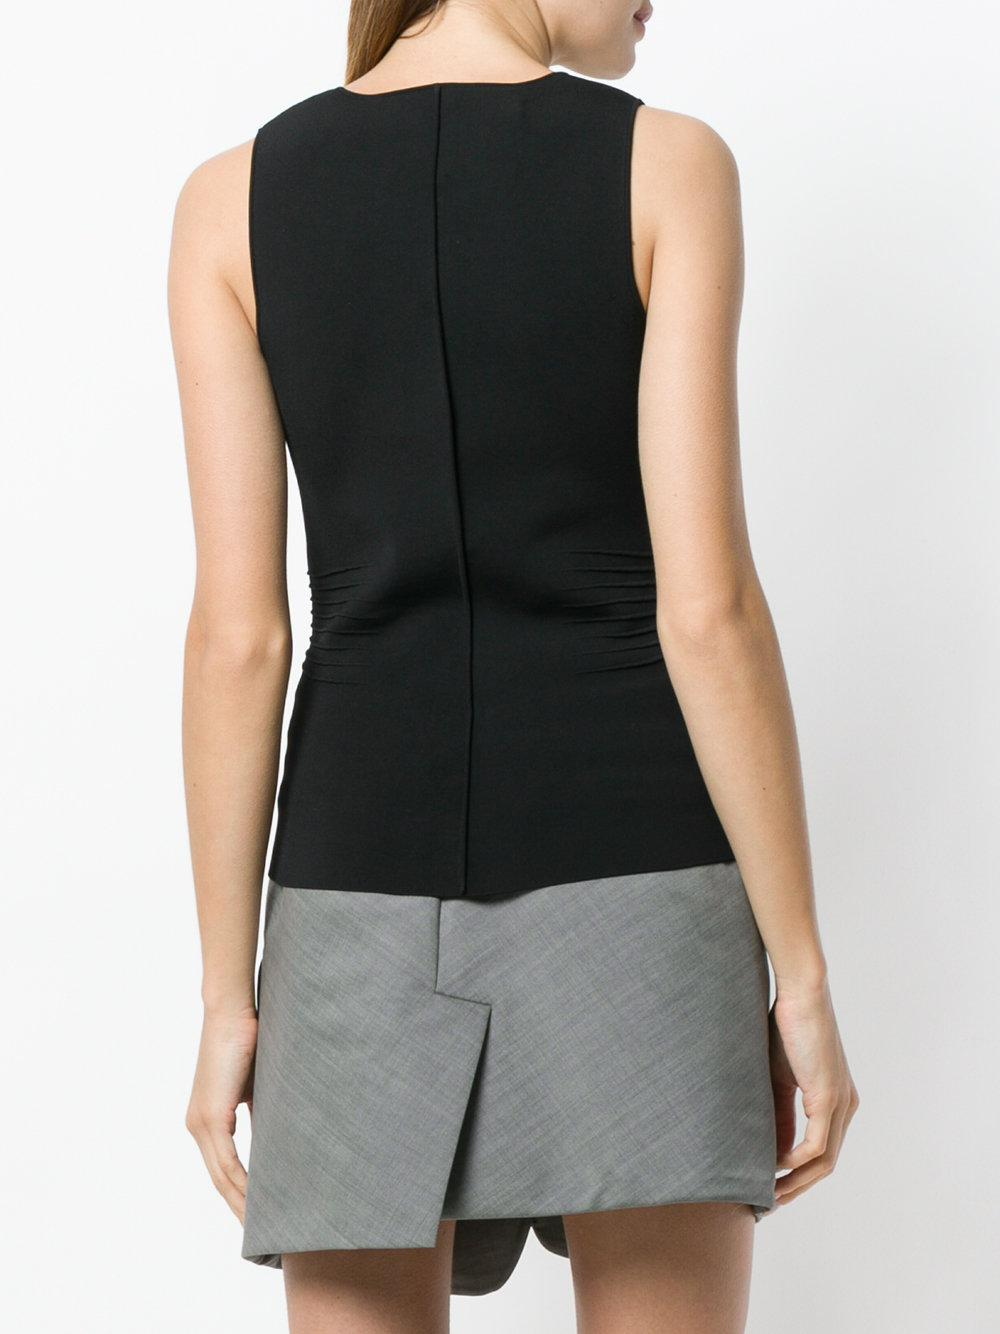 Free Shipping High Quality pleated detail sleeveless top - Black Alexander Wang Ost Release Dates Free Shipping Cheap Quality Pre Order Online 2dxCQZiMIO